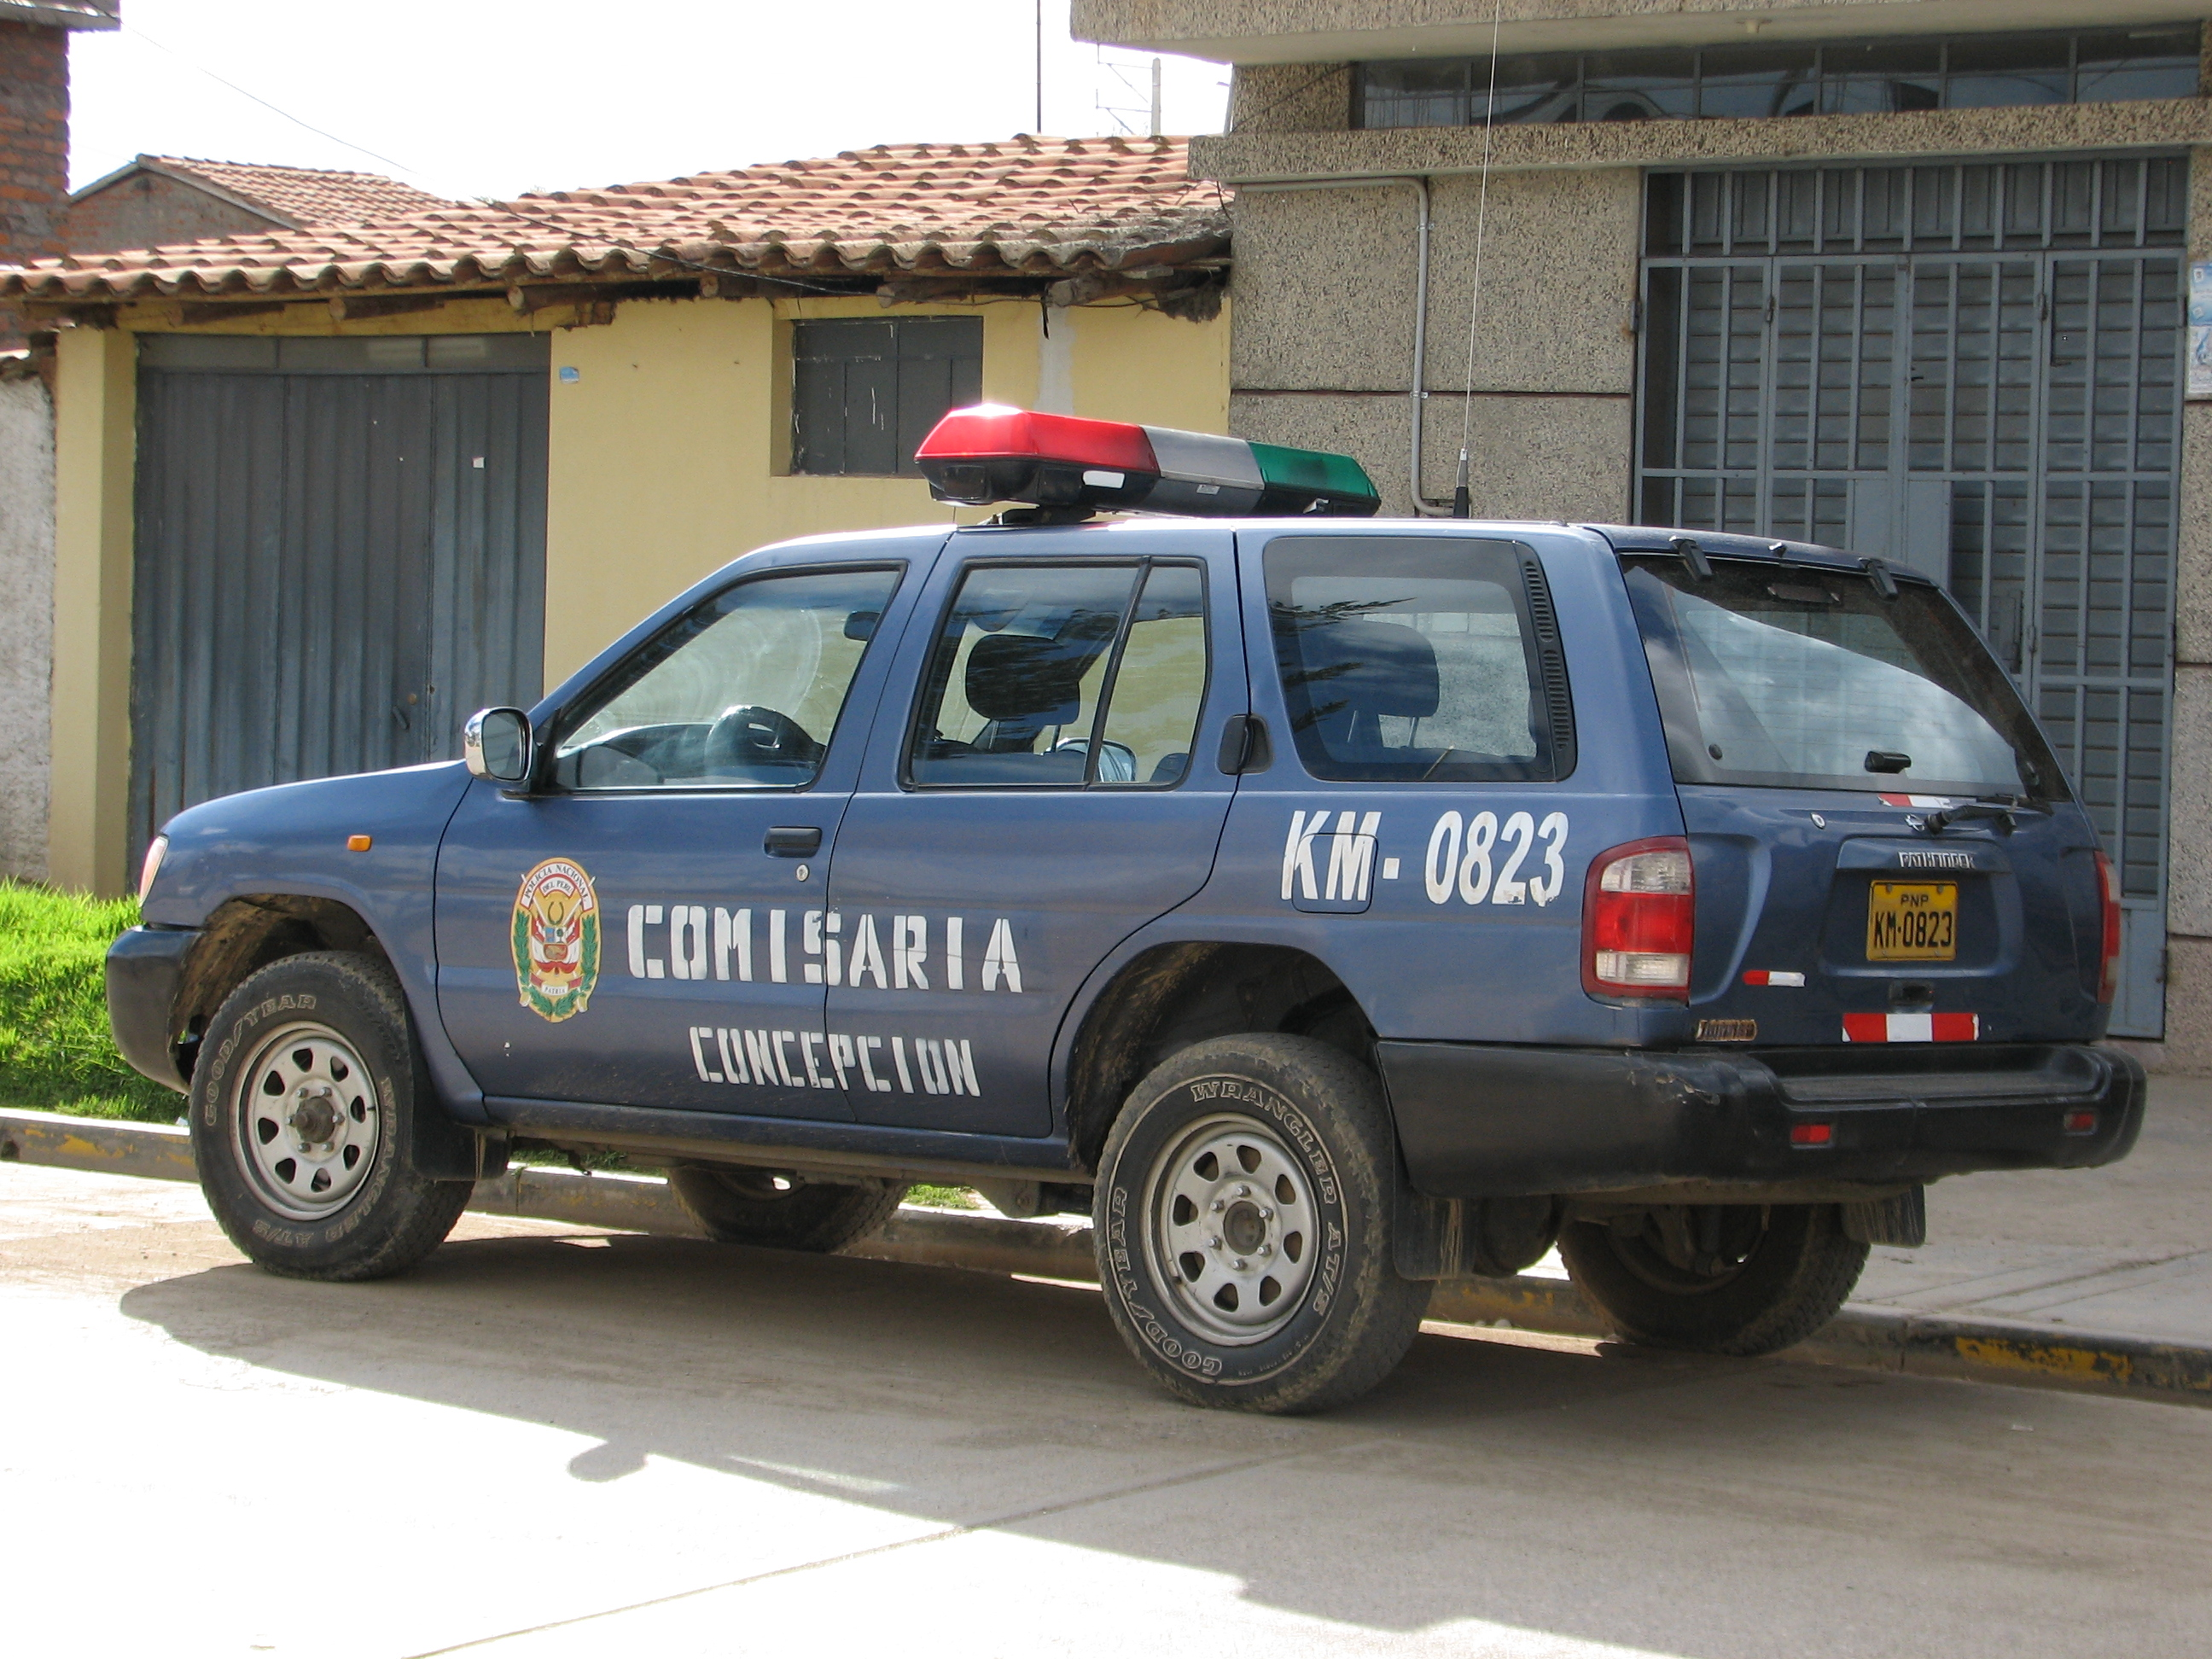 file:police car concepción nissan peru - wikimedia commons